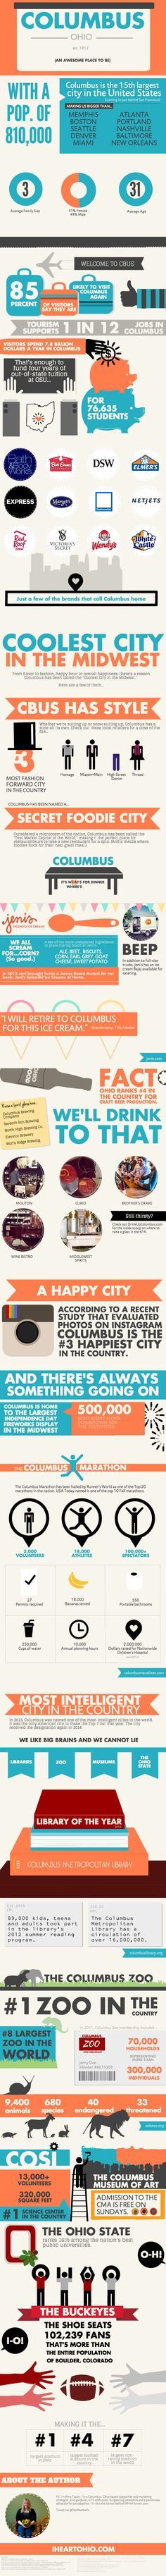 Columbus, Ohio - an awesome place to be!   #infographic created in #free @Piktochart #Infographic Editor at www.piktochart.com